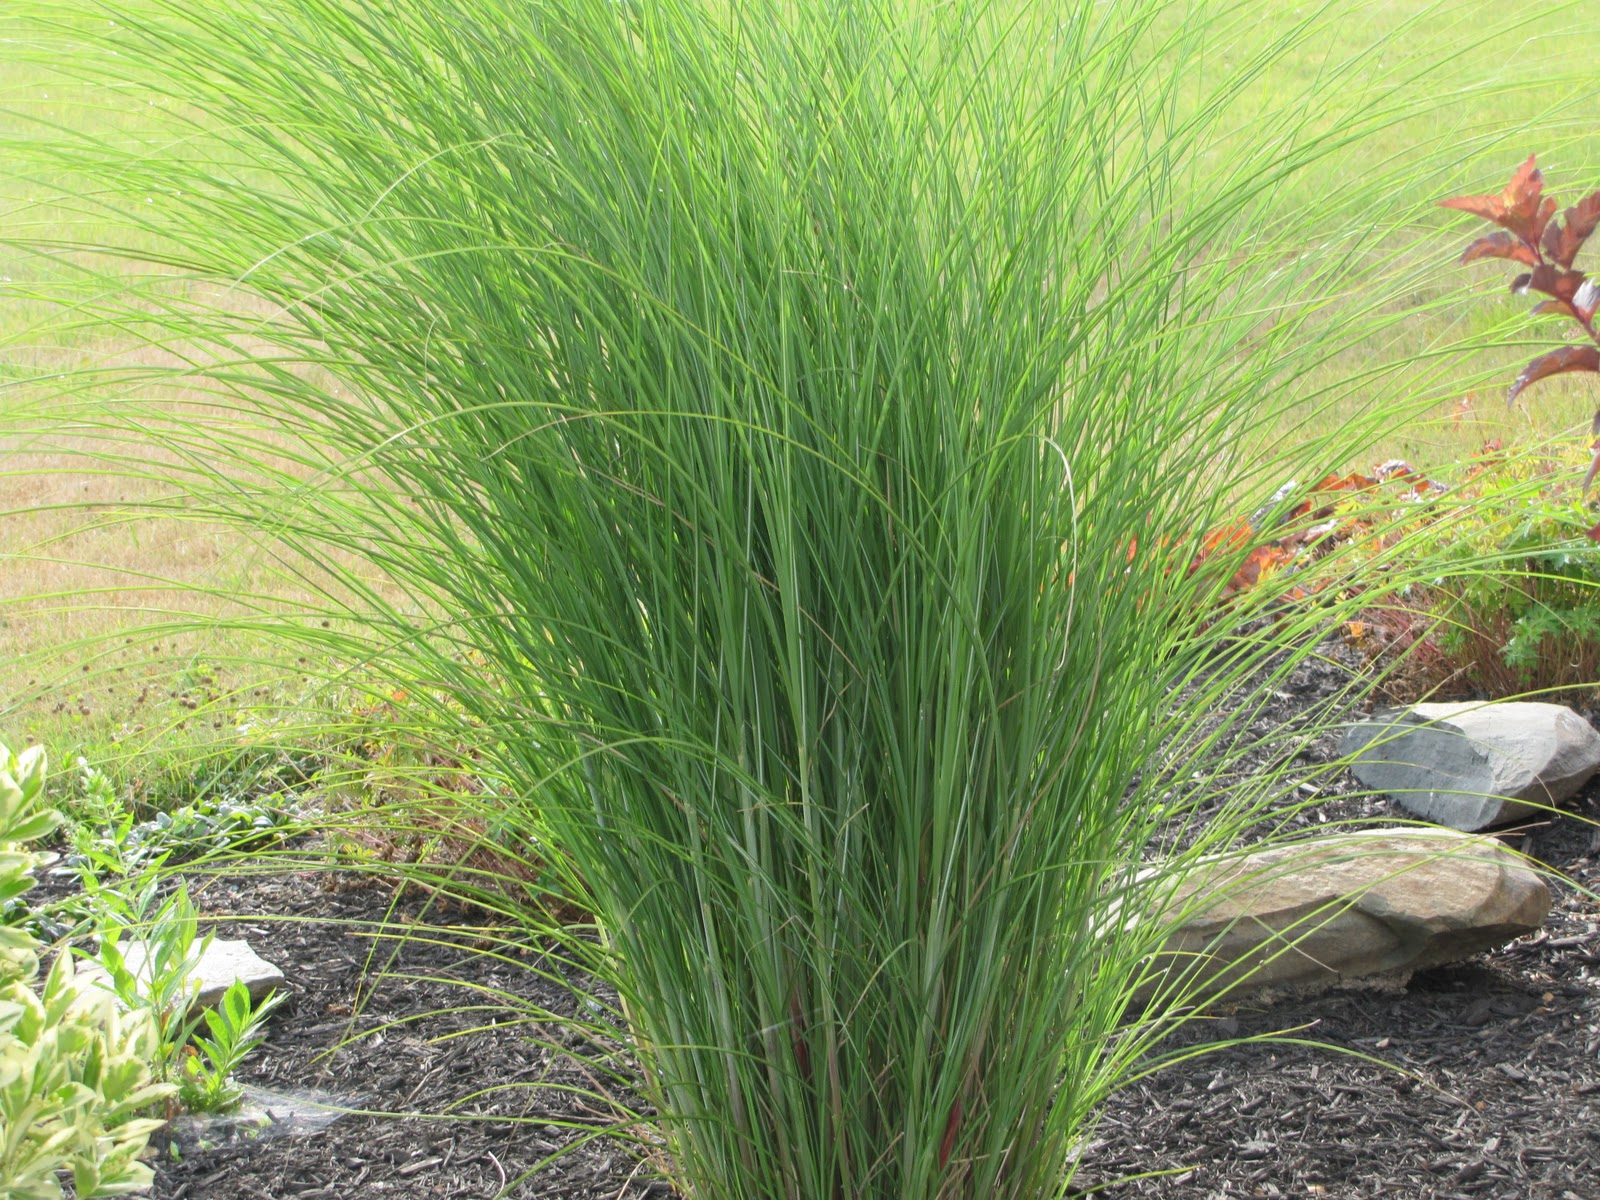 20 Excellent Tall Grass For Landscaping Images Landscape Ideas